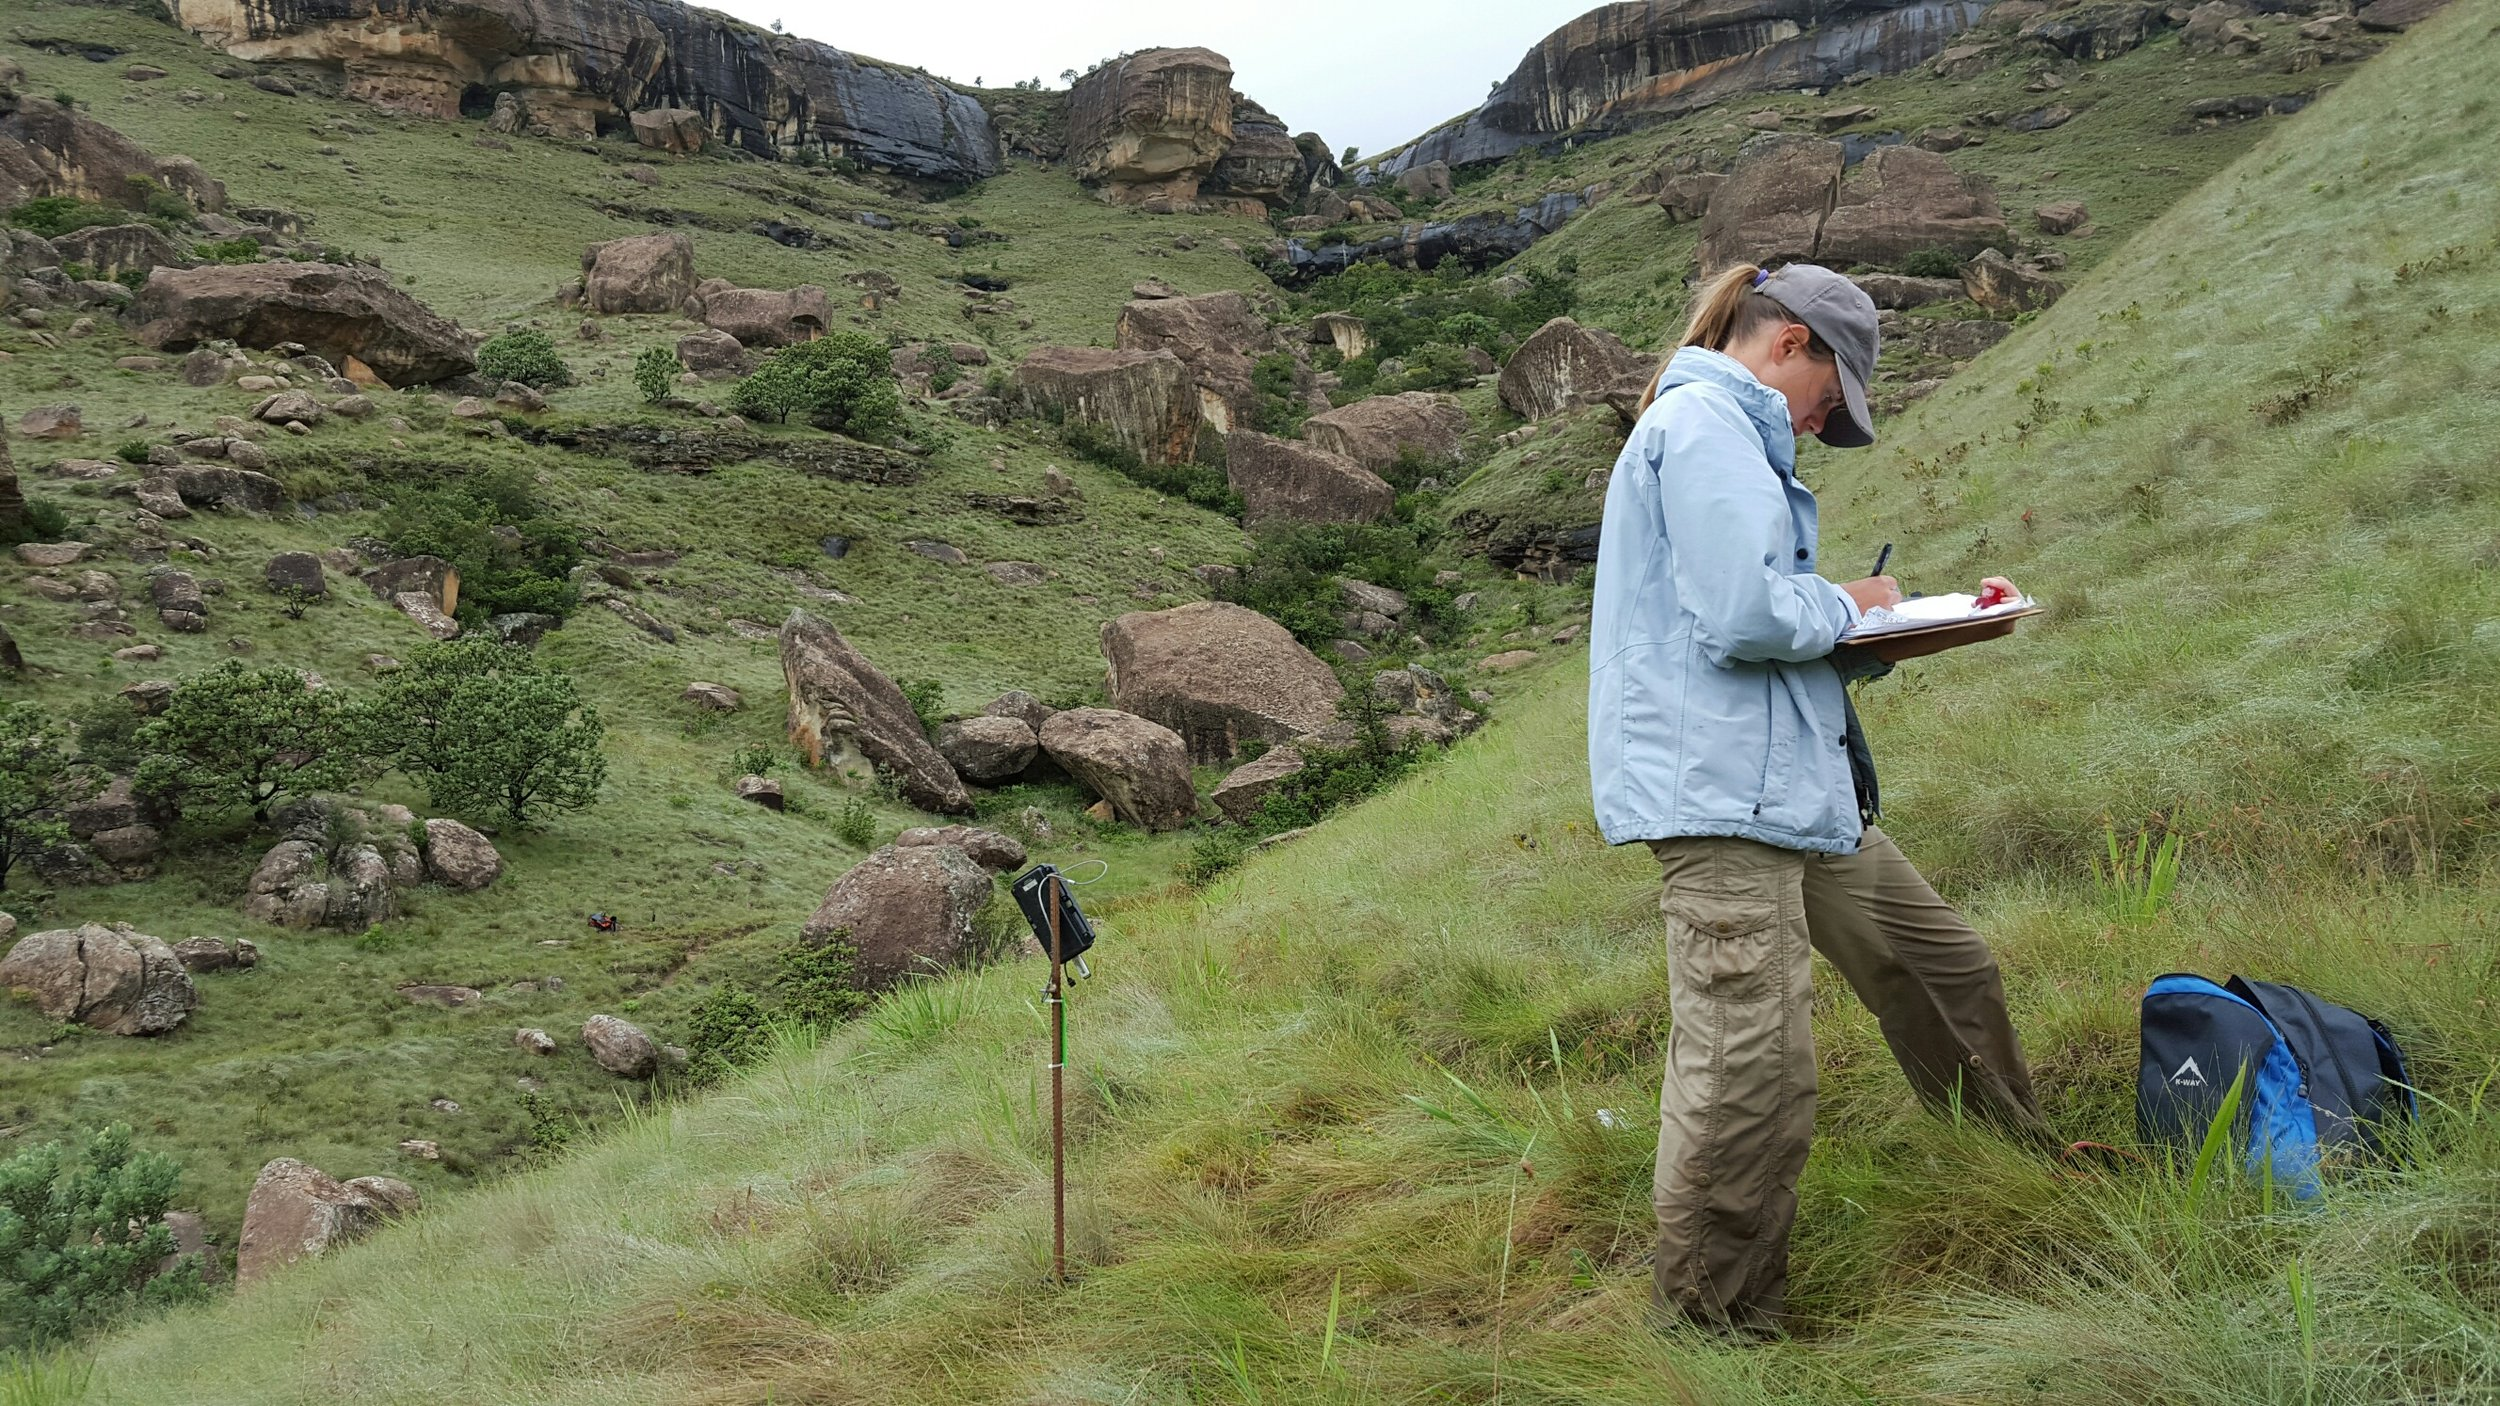 Checking camera trap data in the Drakensburg Mountain range, South Africa. This was the first camera trap Leopard Survey of its kind carried out in the Drakensburg.